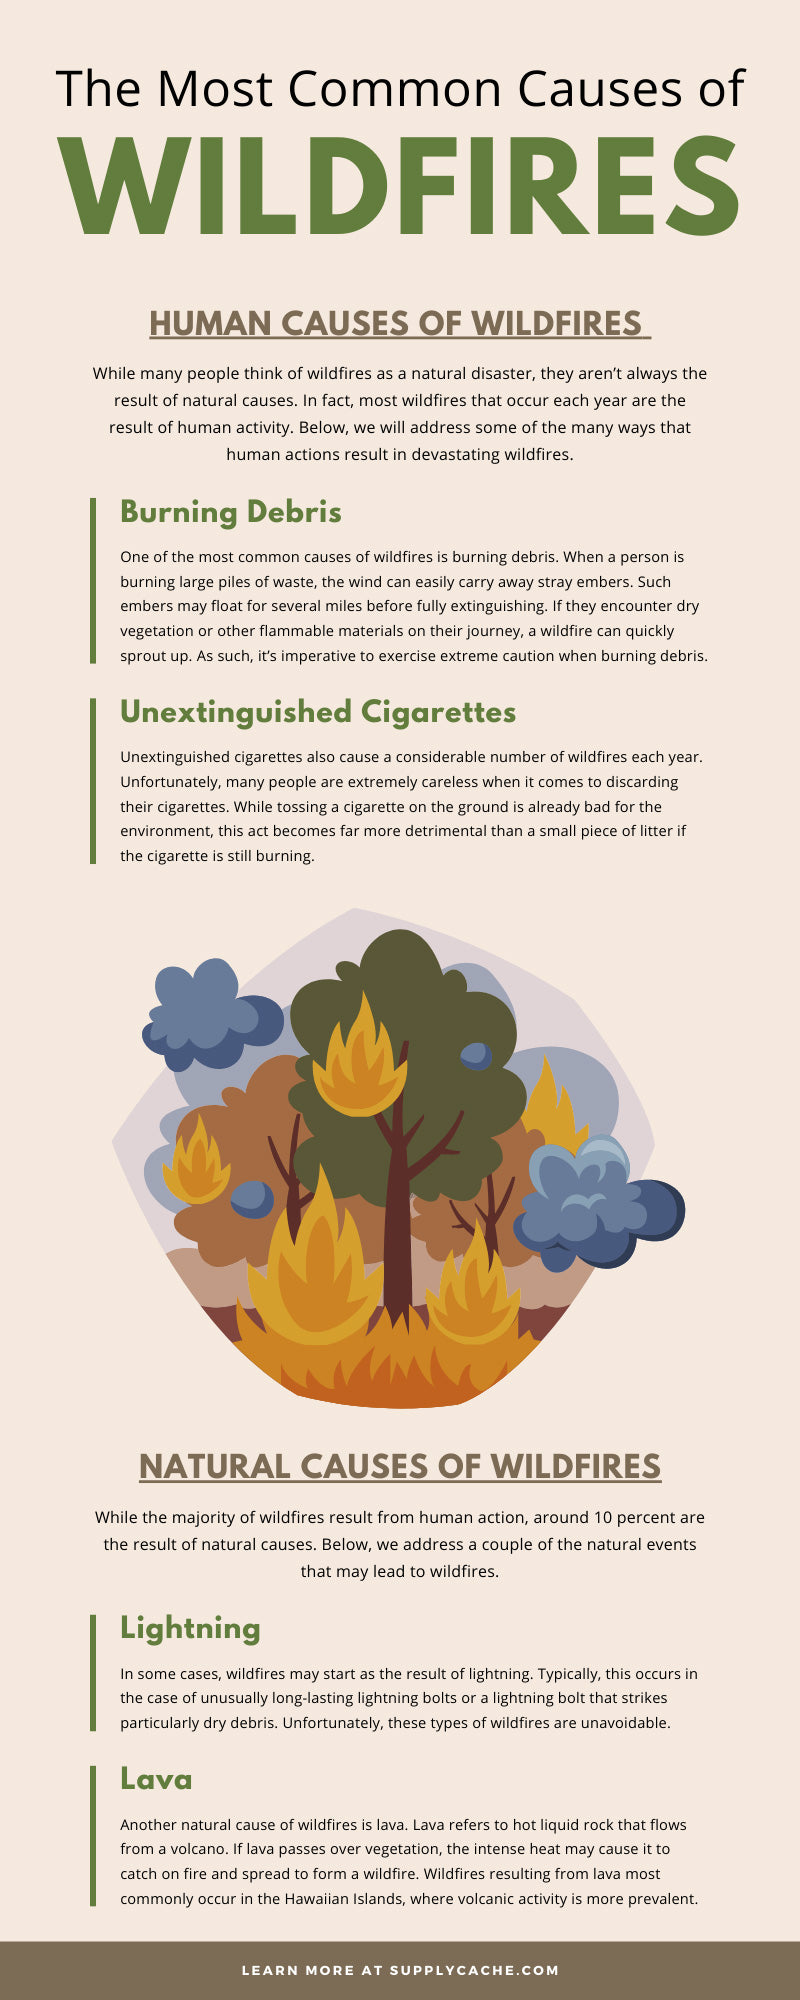 The Most Common Causes of Wildfires